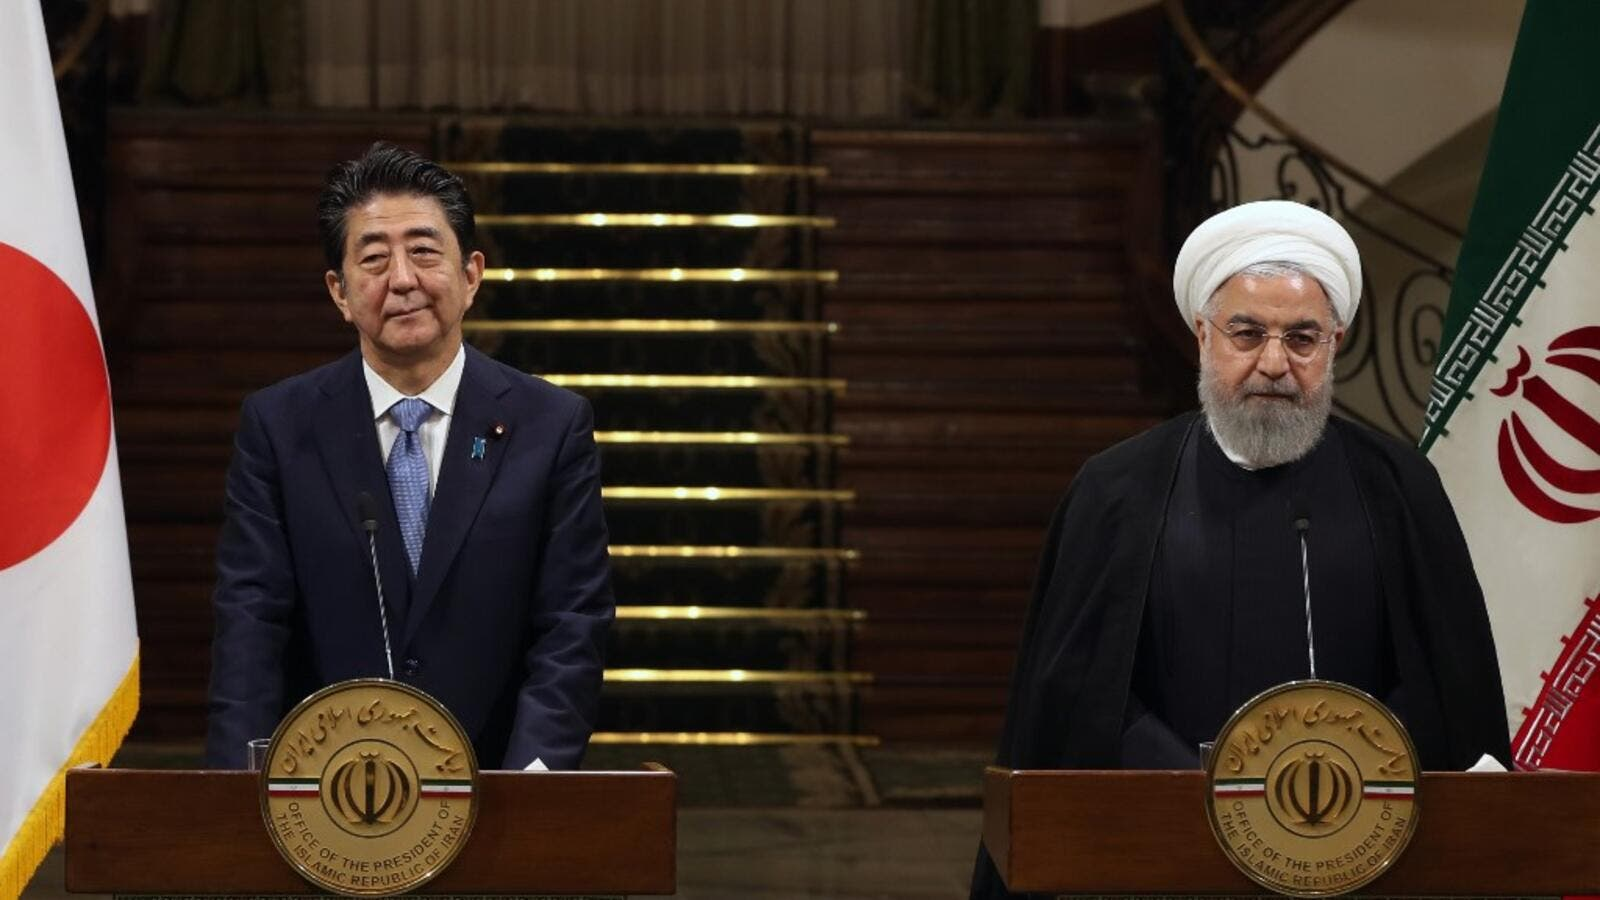 Iranian President Hassan Rouhani (R) and Japanese Prime Minister Shinzo Abe, give a joint press conference at the Saadabad Palace in the Iranian capital Tehran on June 12, 2019. (AFP/ File)